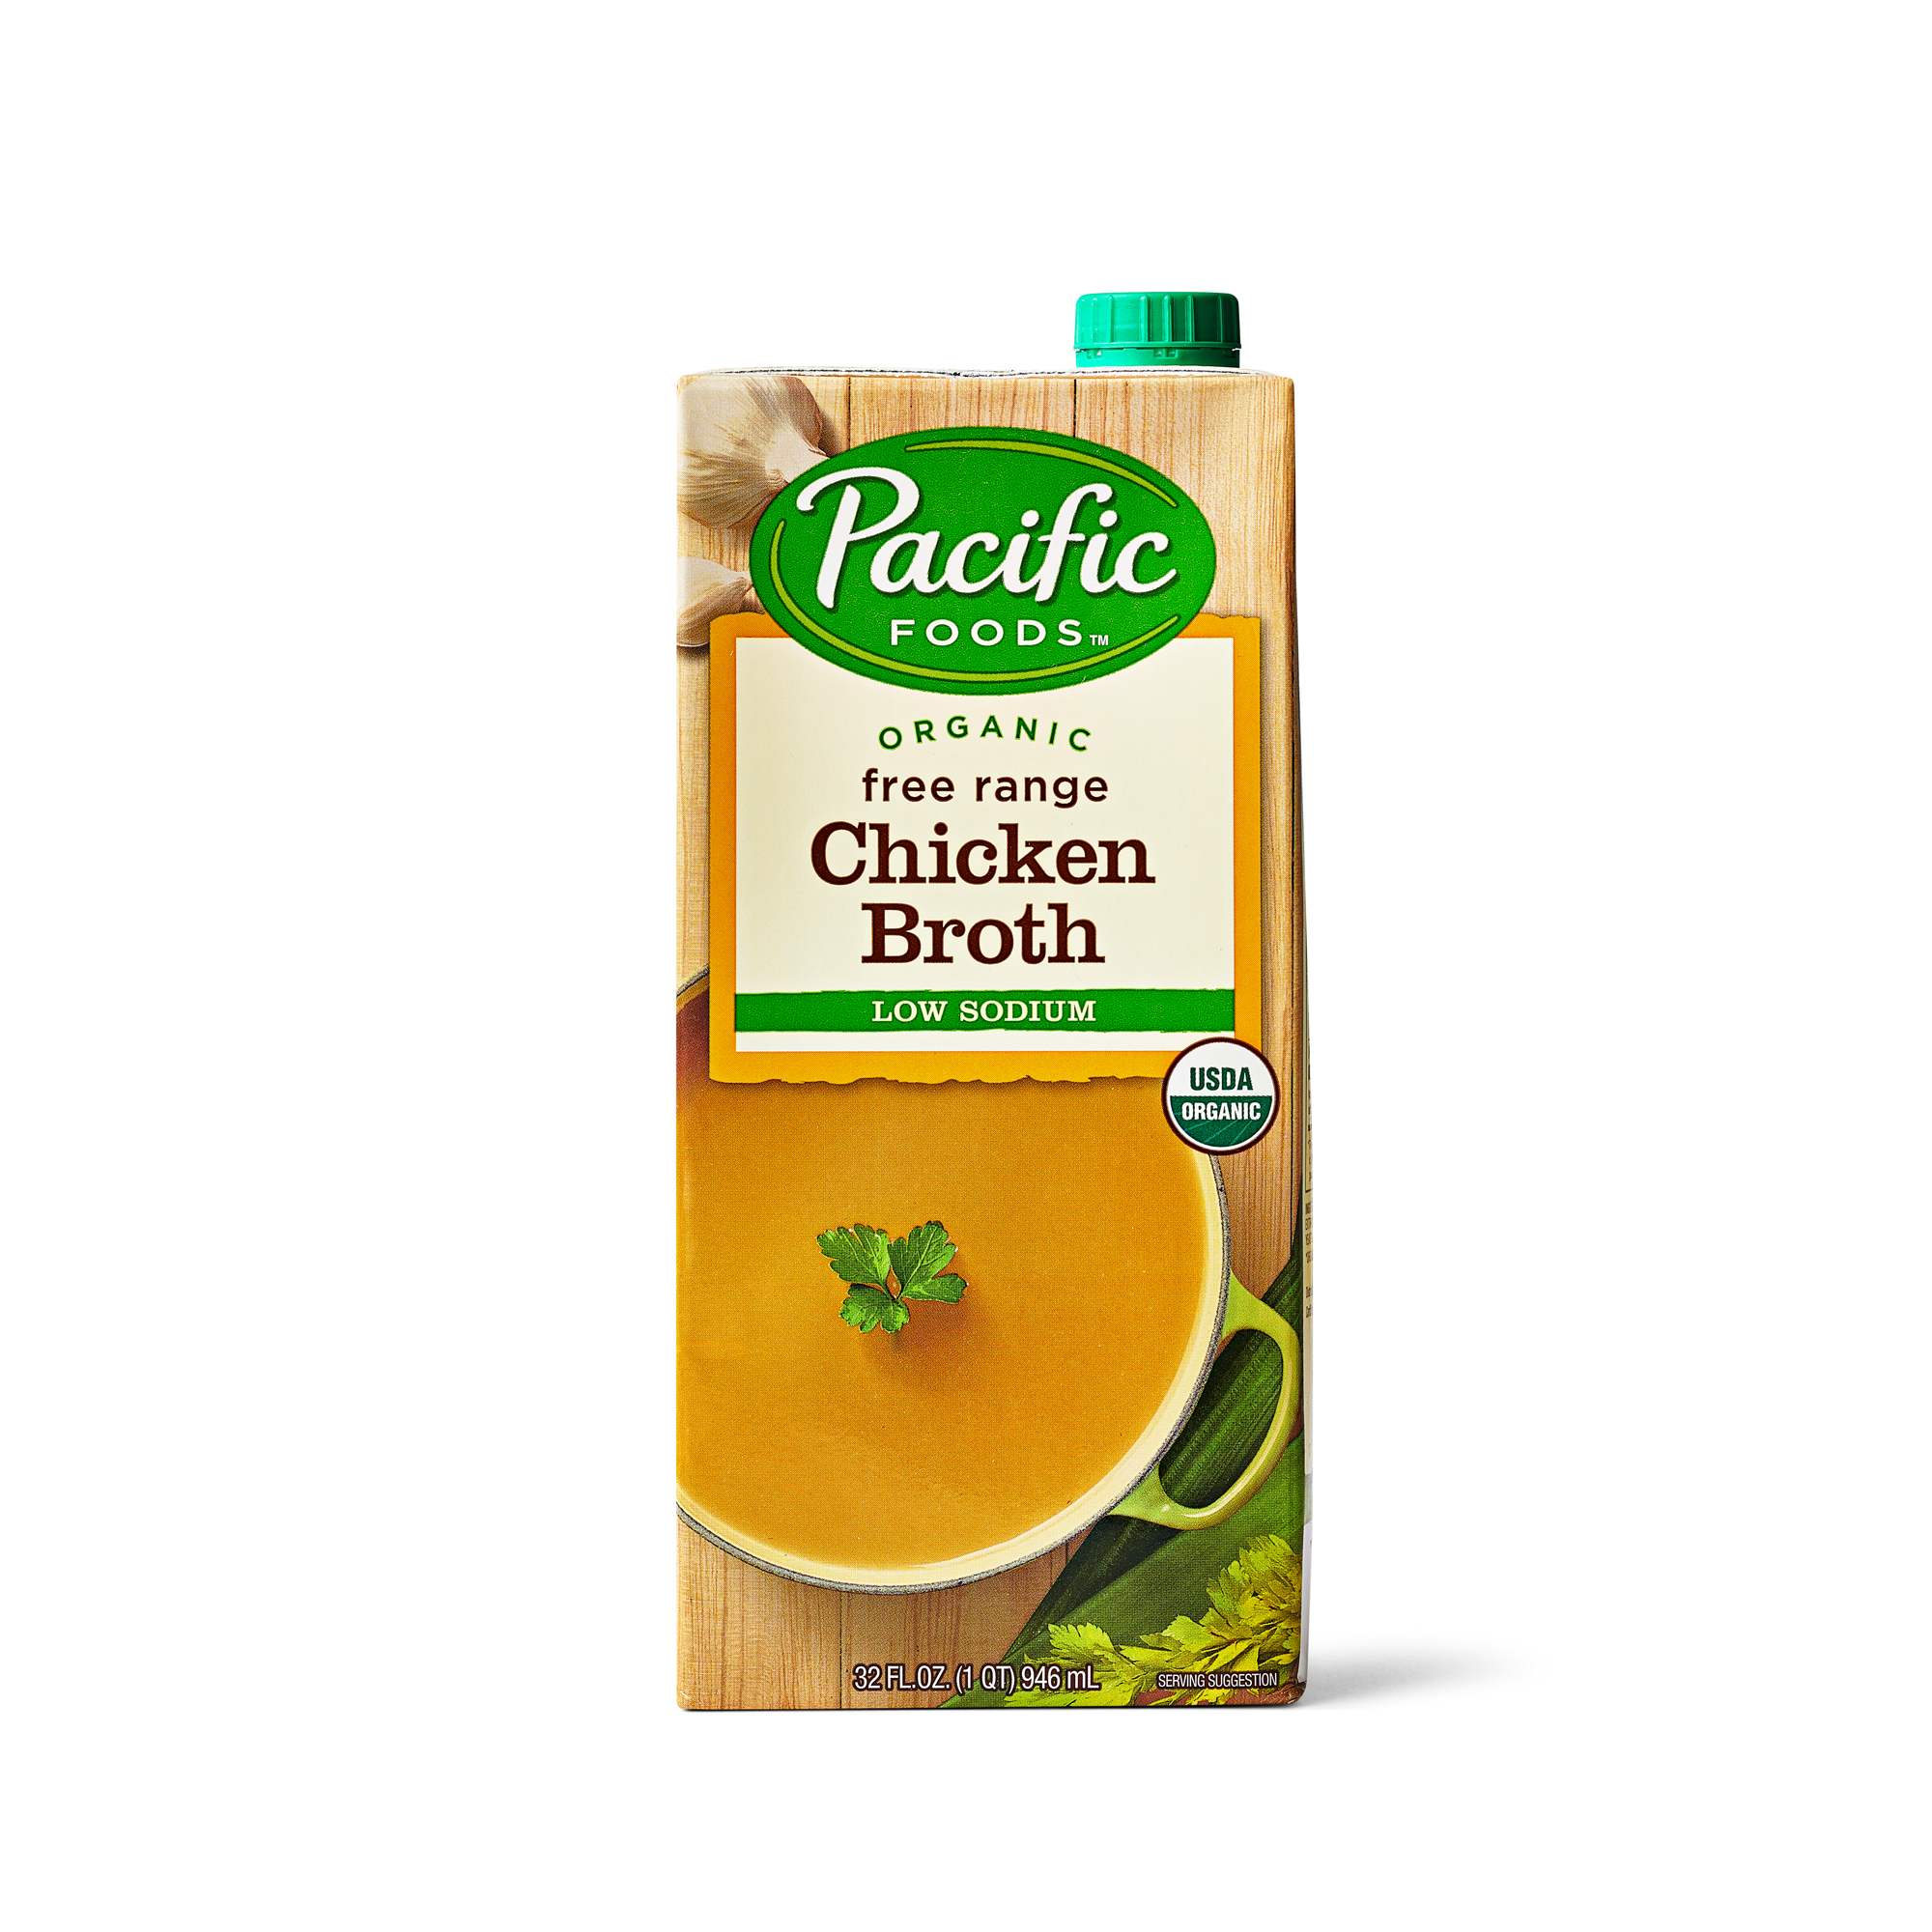 Pacific Foods broth